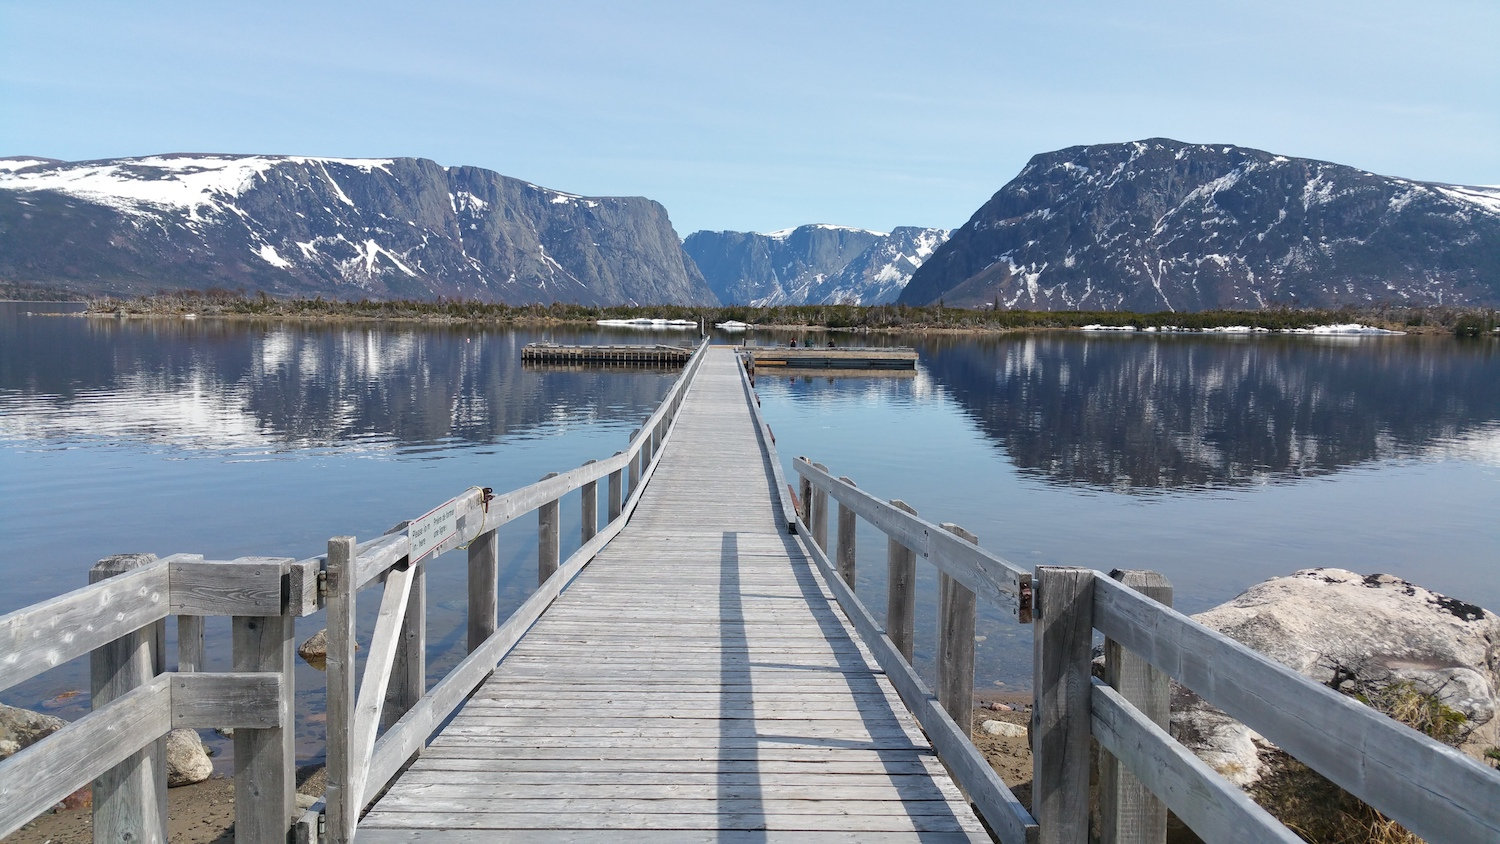 """Boardwalk into Western Brook Pond with mountains in Gros Morne National Park, Newfoundland"" By Julie A Lynch via Shutterstock"